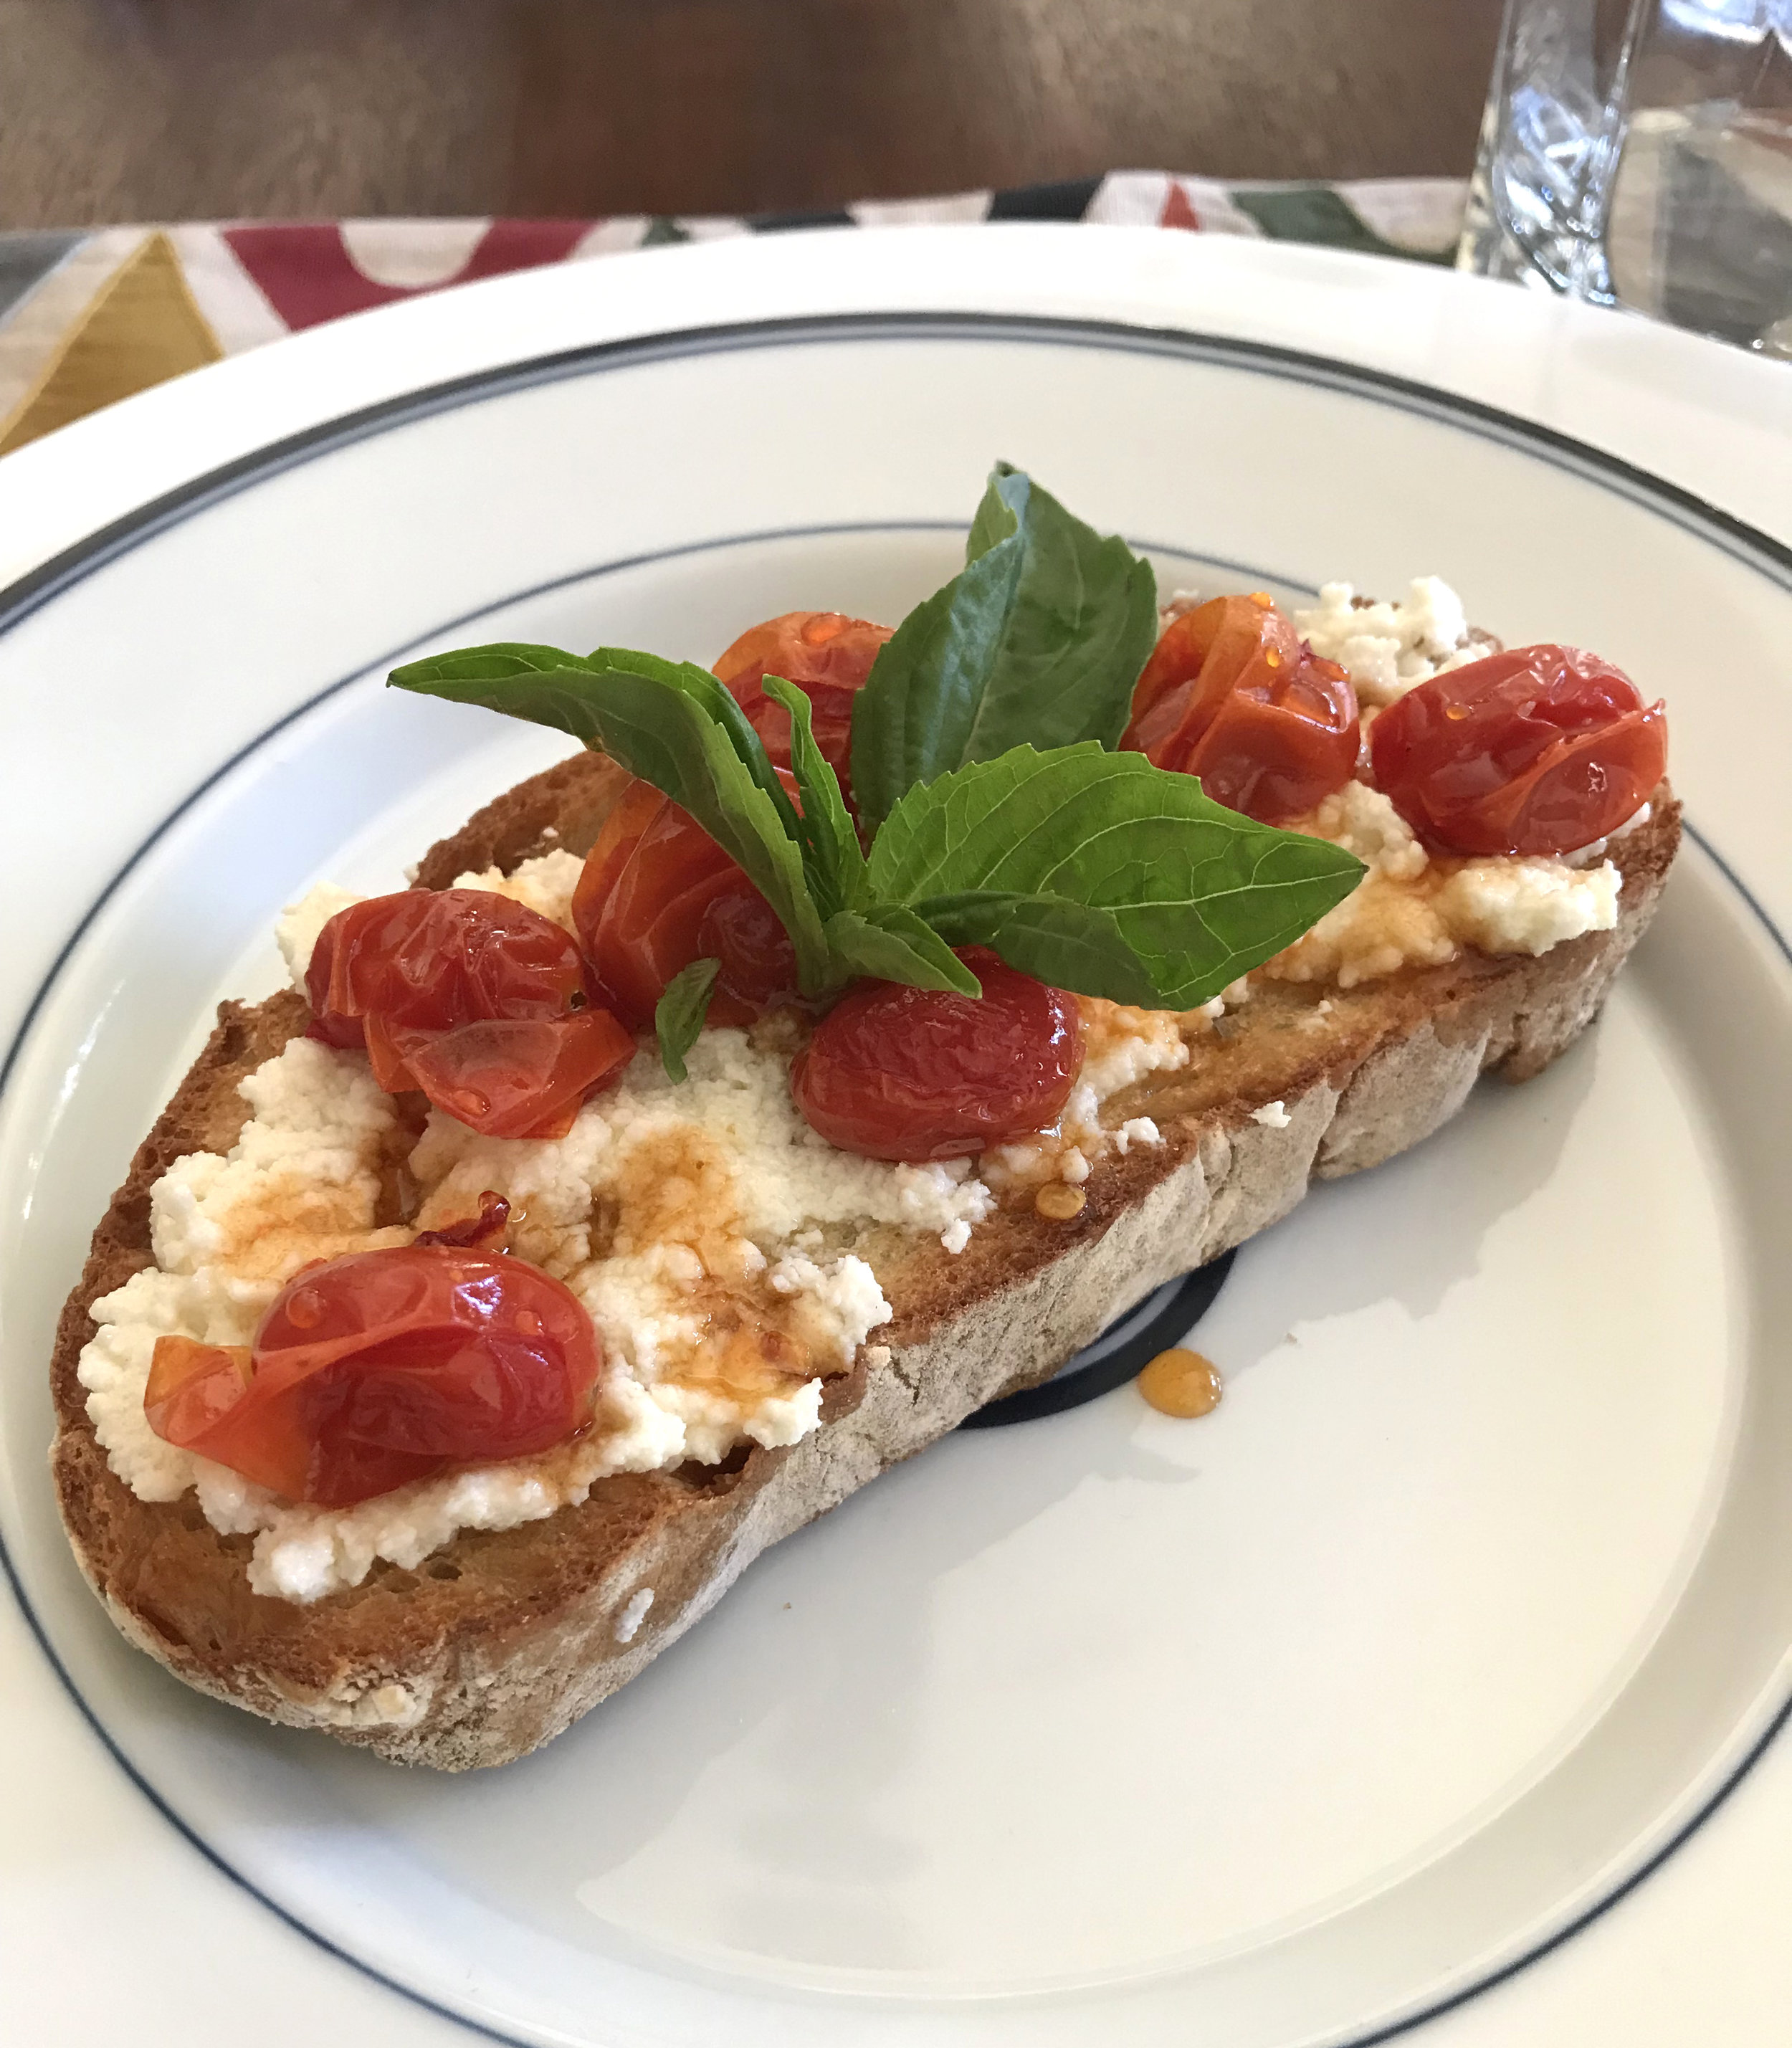 RICOTTA BRUSCHETTA WITH ROASTED TOMATOES & SPICY HONEY